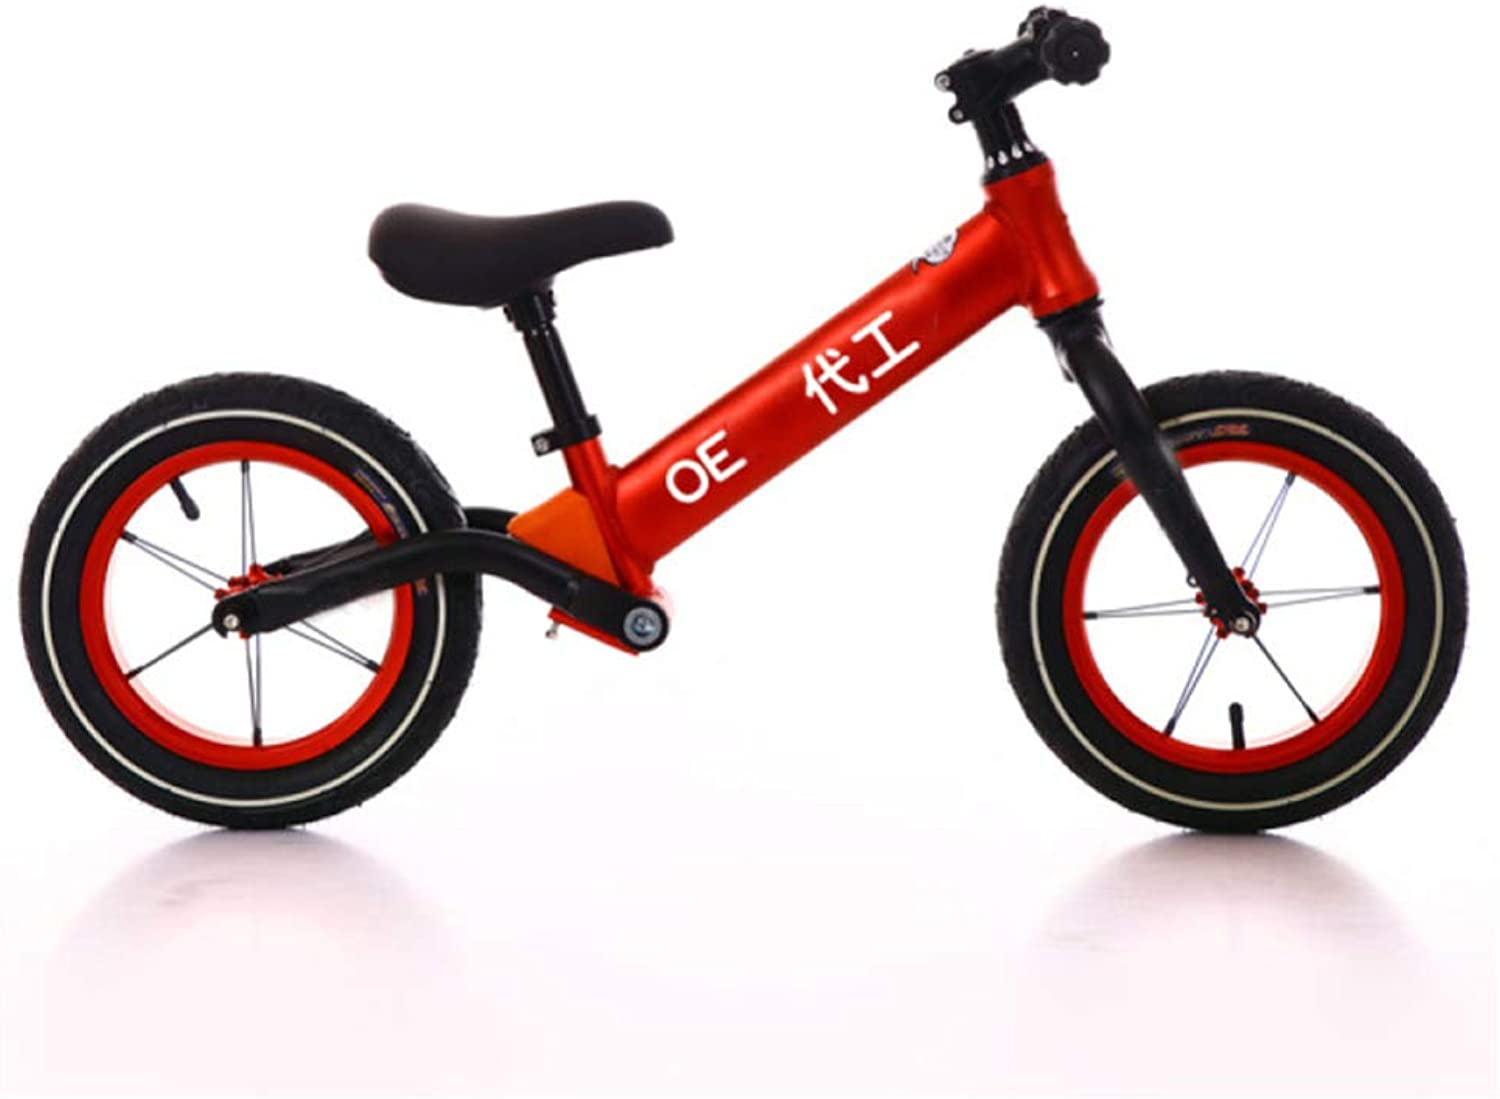 YSH Balance Bike Kids Walker Scooter,Explosionproof Rubber Wheel,Suitable For Ages 26,Height  80120cm,Adjustable Height,Red